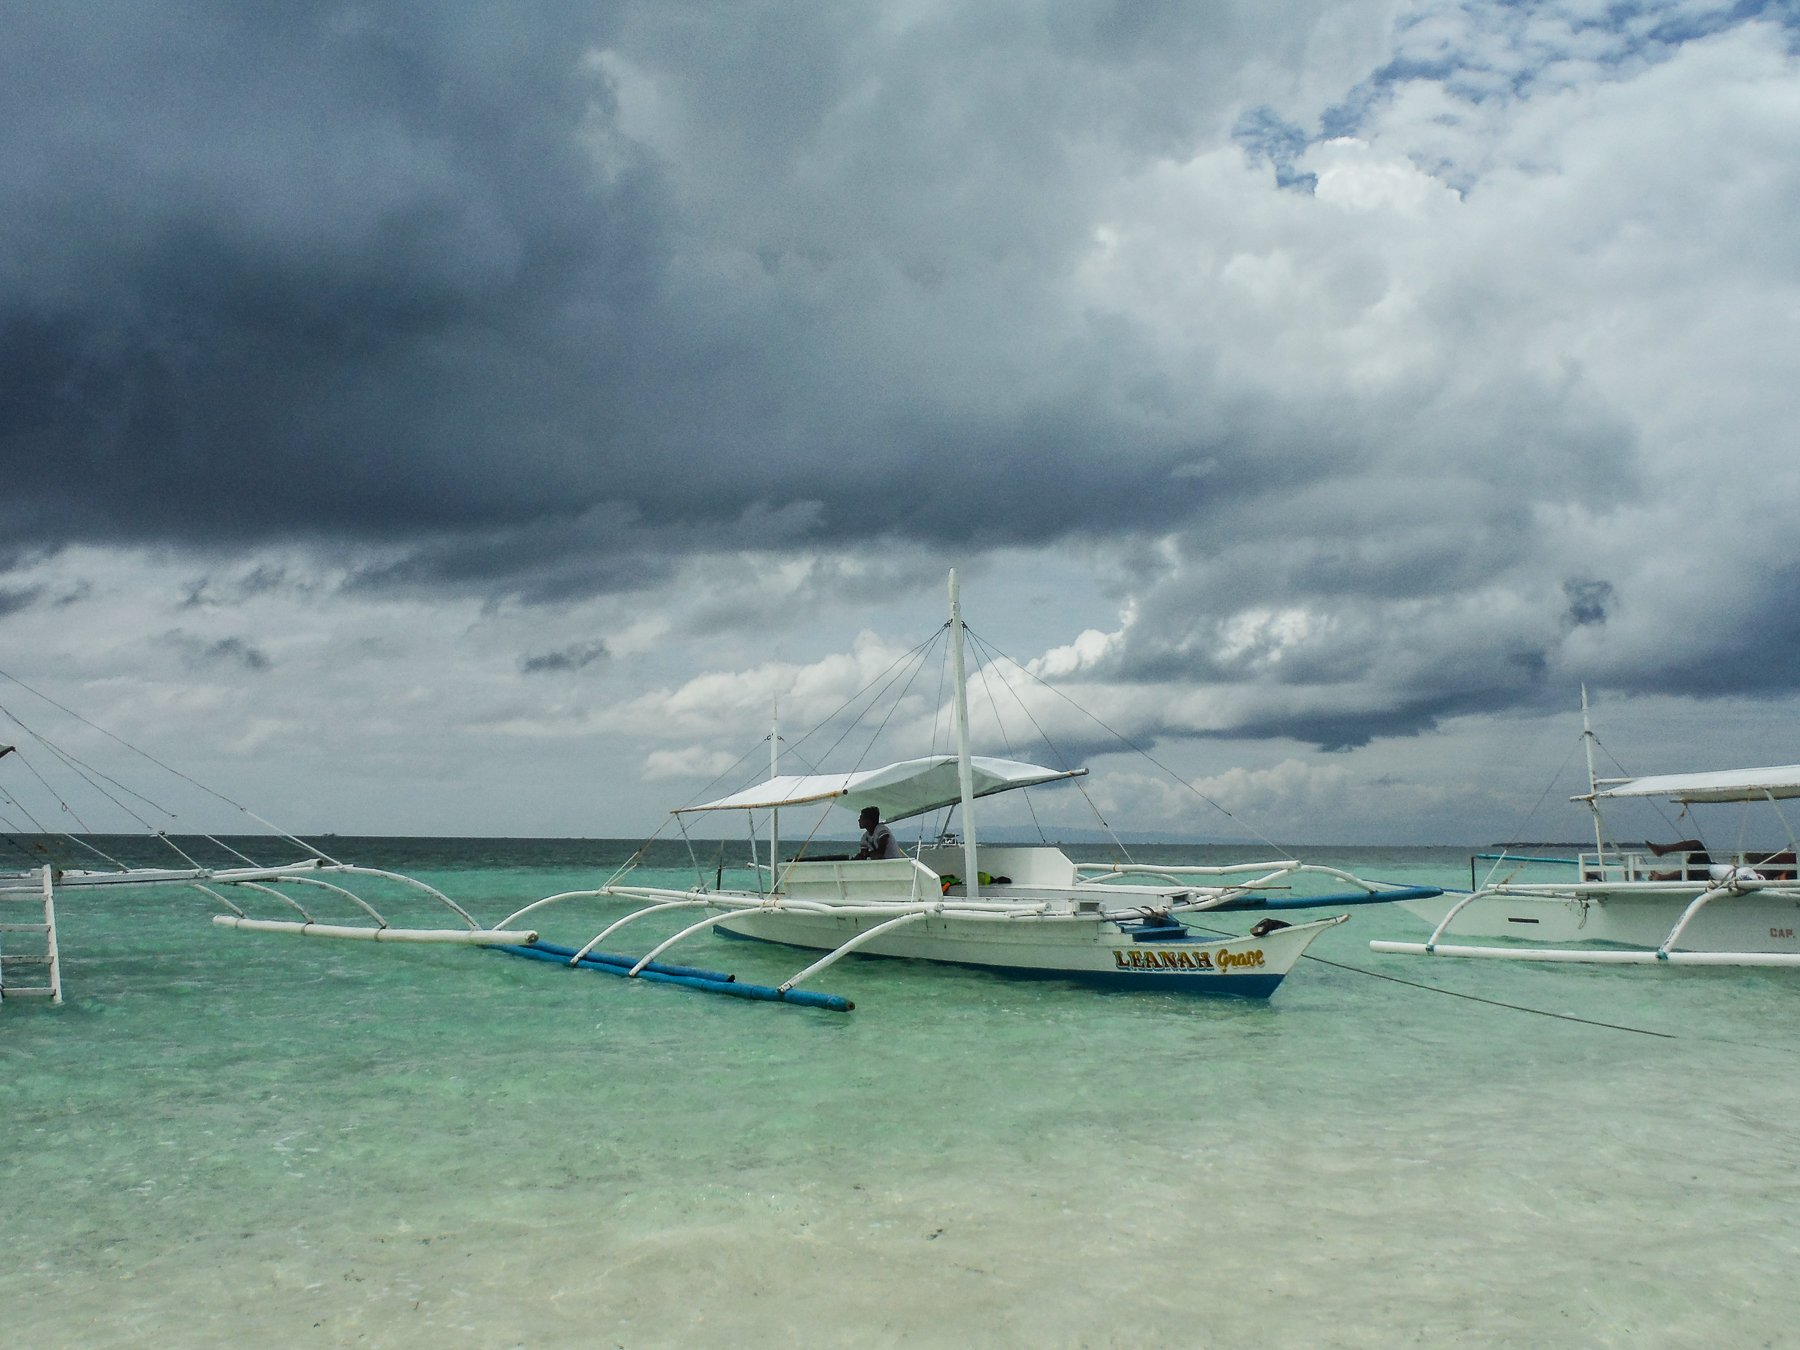 Boat moored to the sand dune at Virgin island in Panglao - Bohol tourist spots